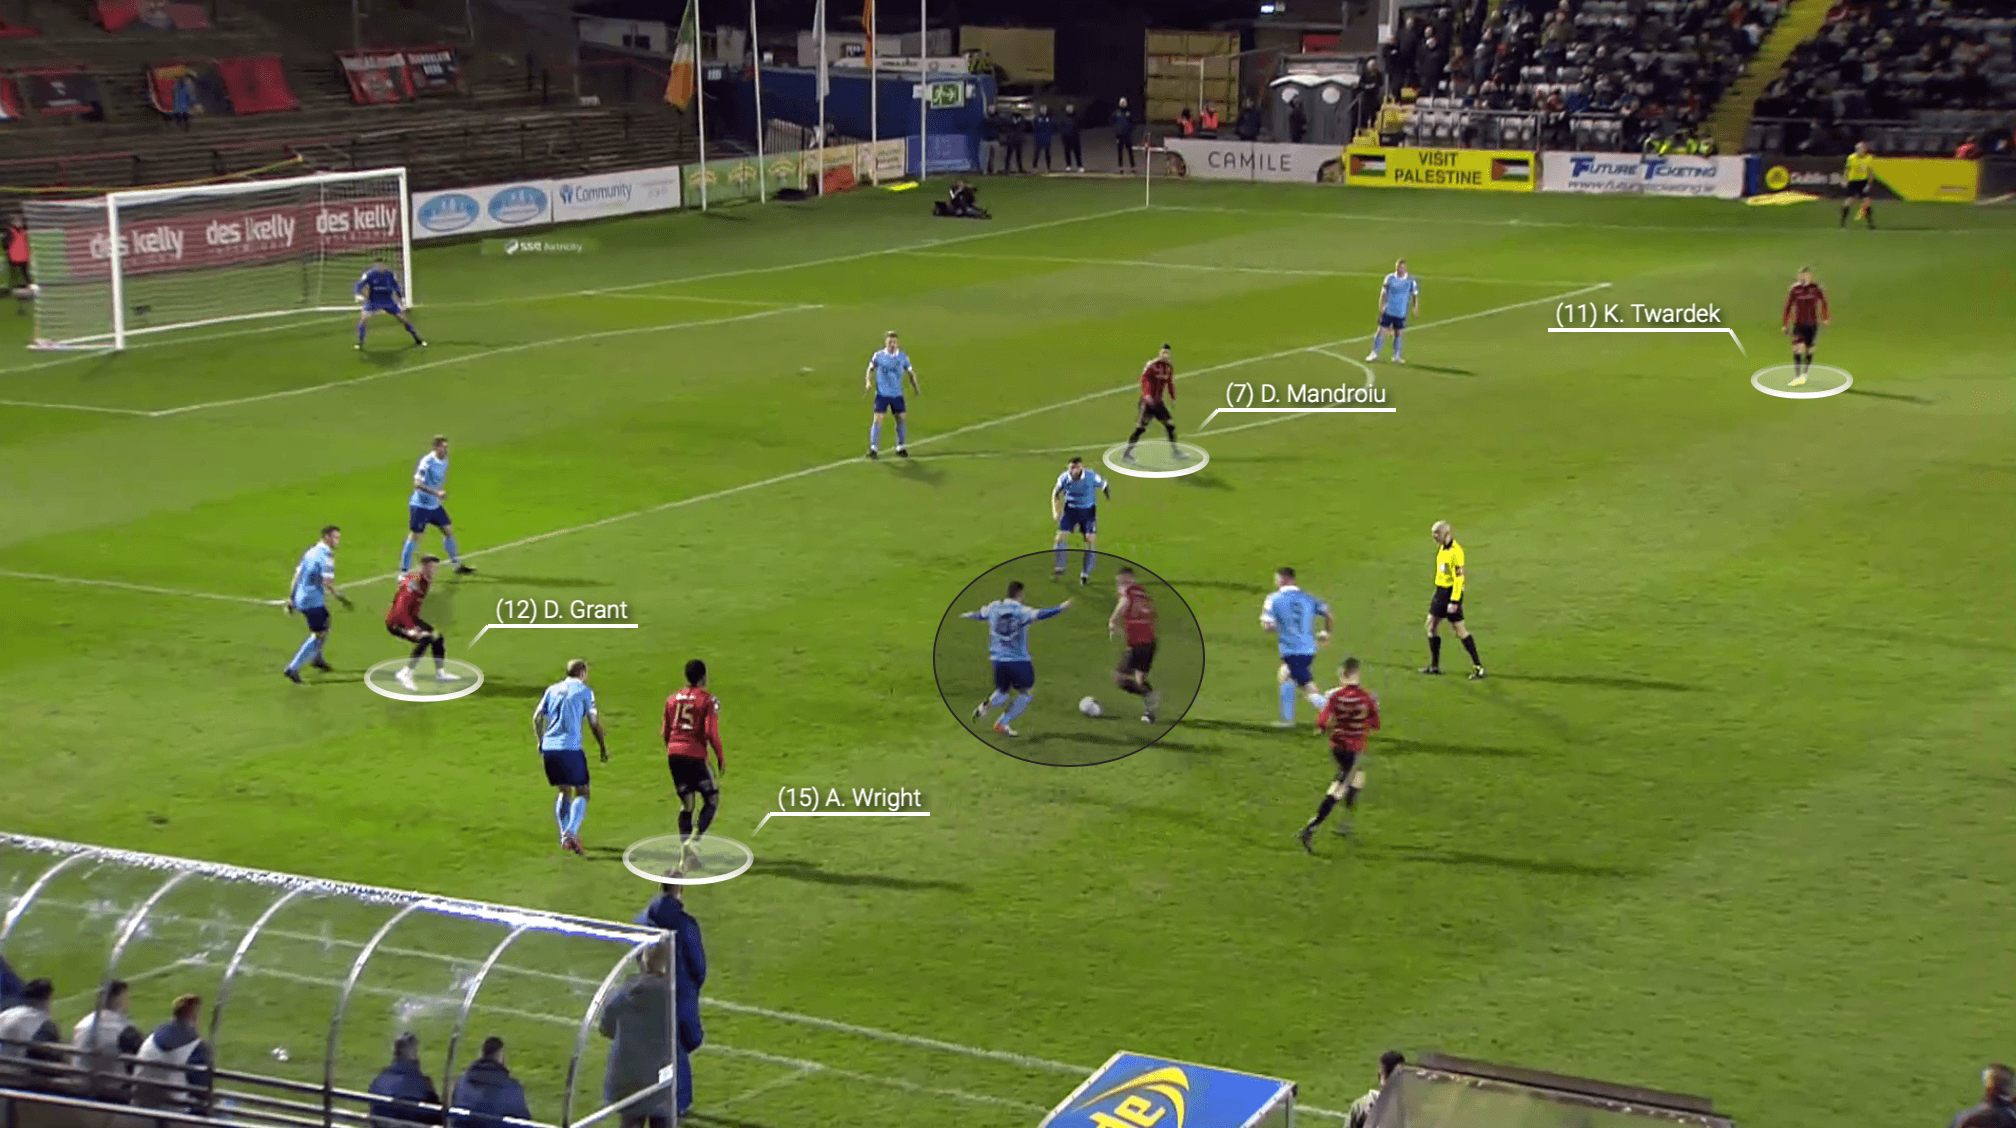 League of Ireland Premier Division 2020: Bohemians vs Shelbourne - tactical analysis tactics